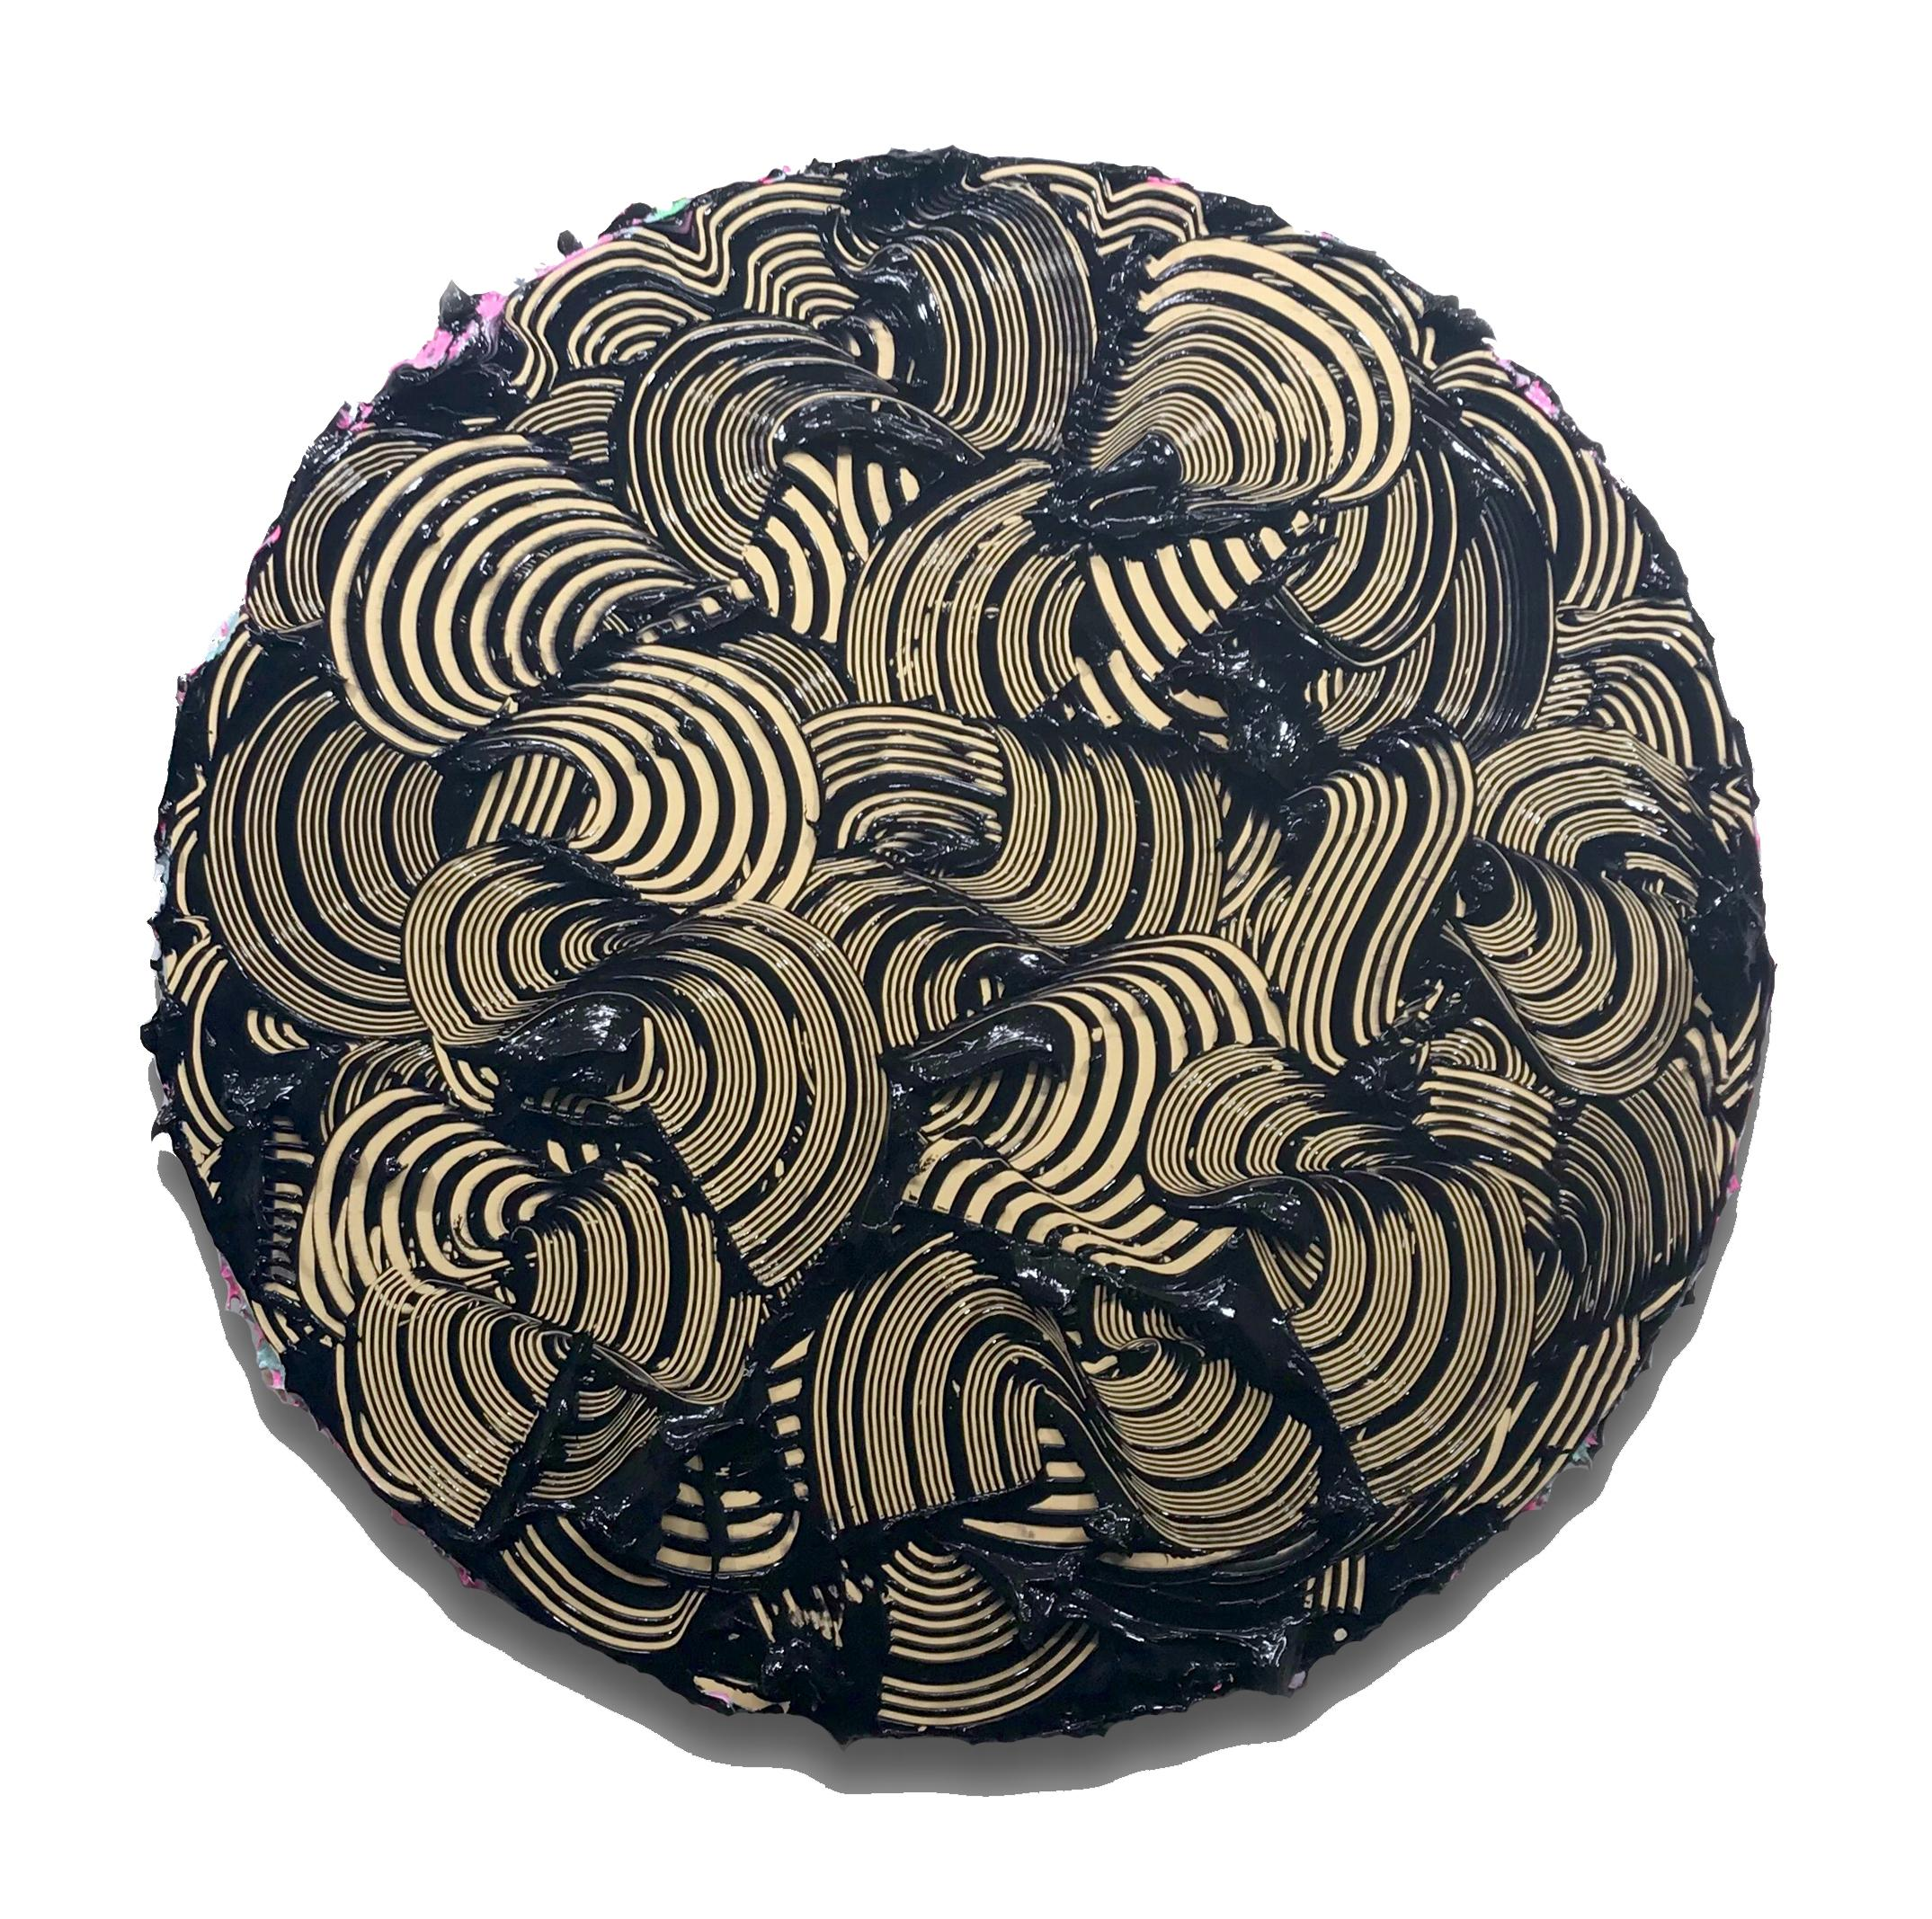 Sabine - textured contemporary painting, colorful, gold strokes, round format